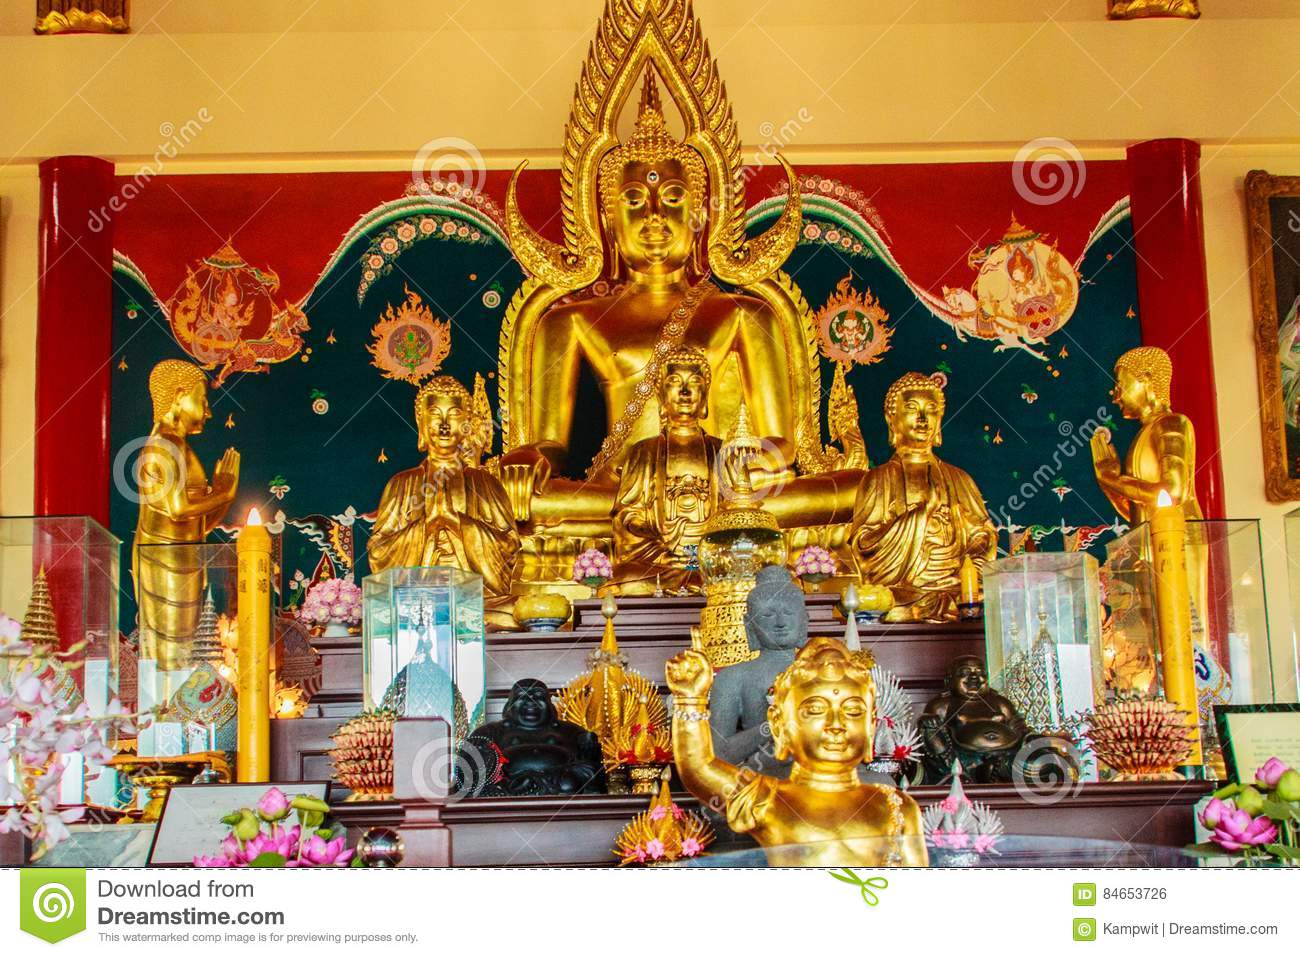 Beautiful Buddha image sculpture at Anek Kusala Sala Viharn Sien, Thai-Chinese temple in Pattaya, Thailand. It was built in 1987